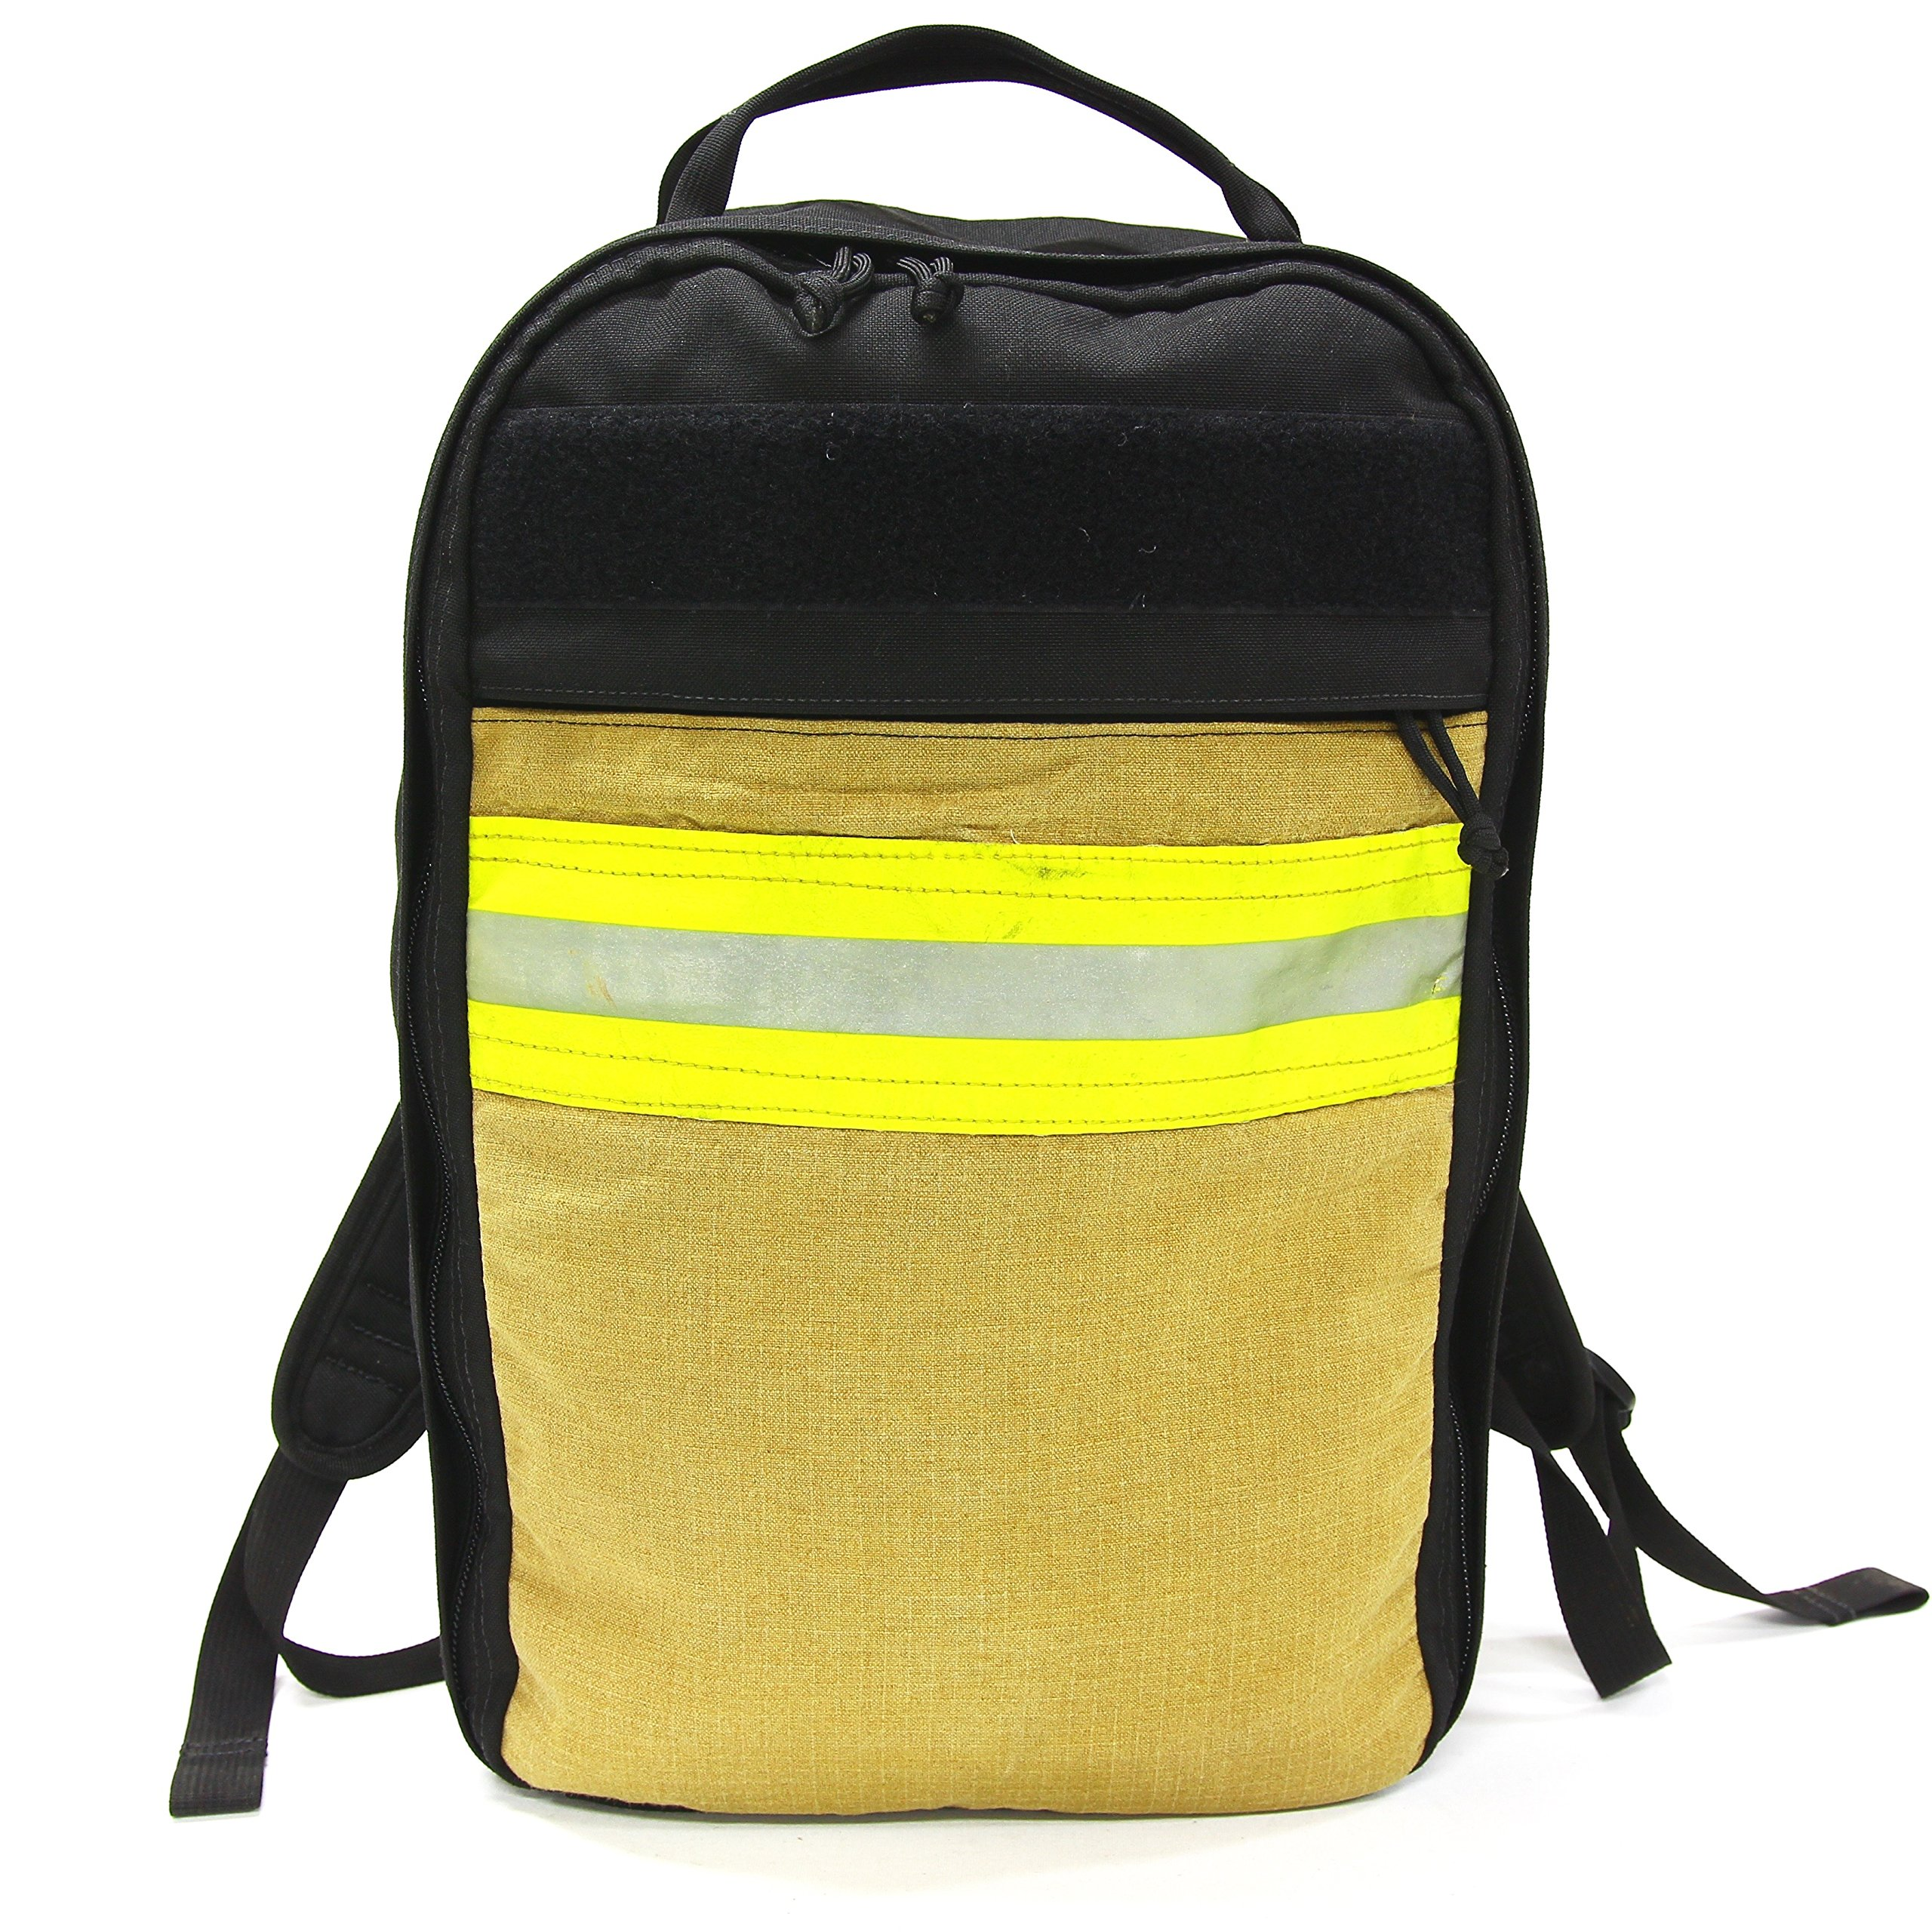 Recycled Firefighter Lay Flat Carry Backpack The Chief Backpack 1000D Cordura by Recycled Firefighter